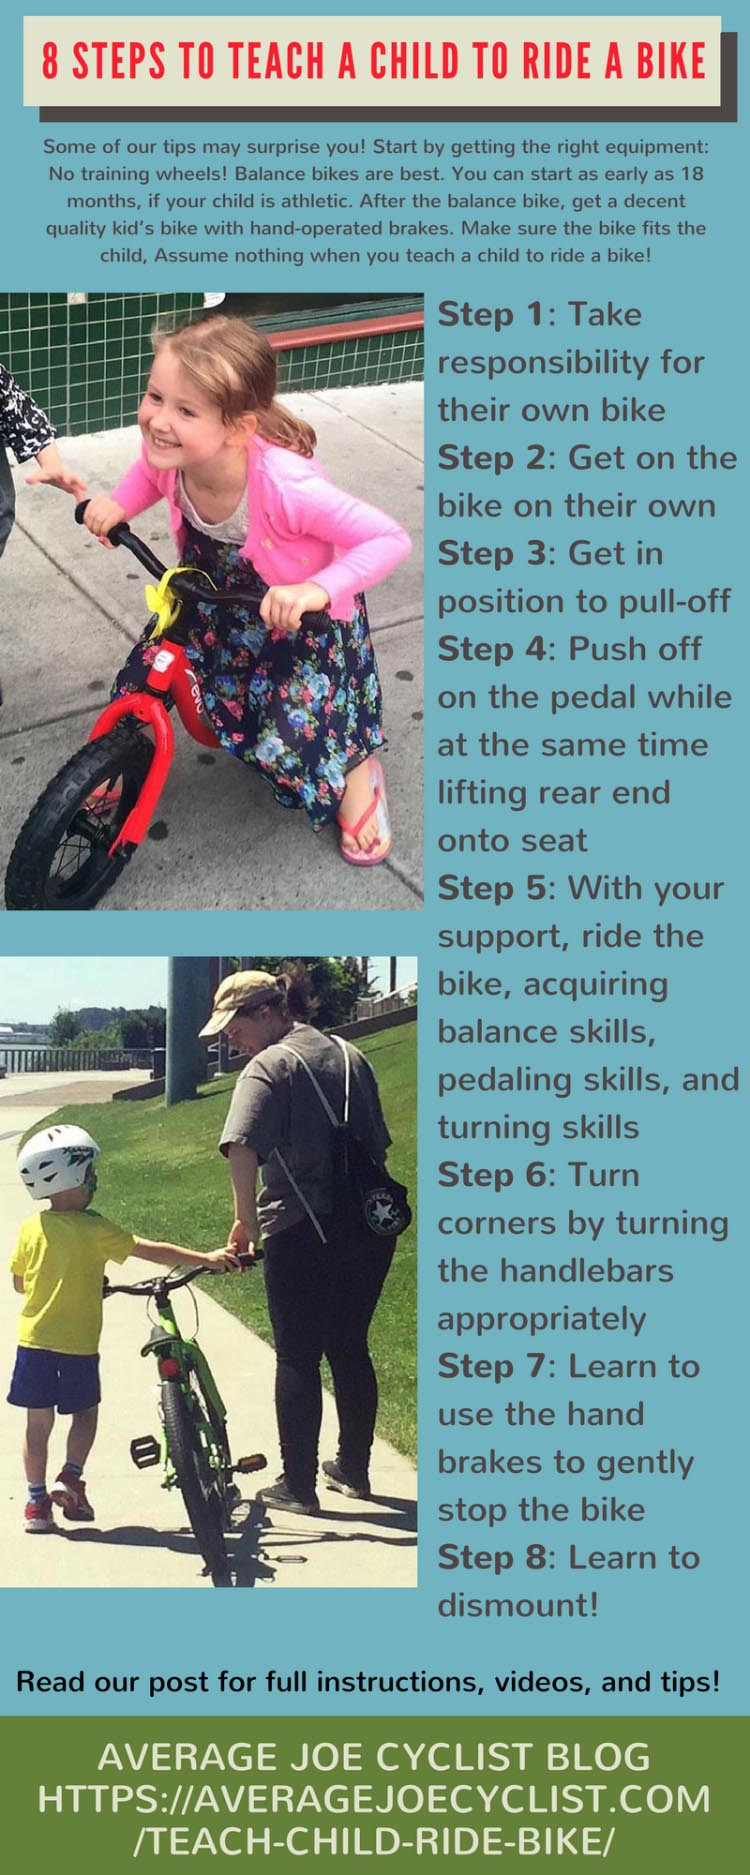 9 simple steps to teach a child to ride a bike